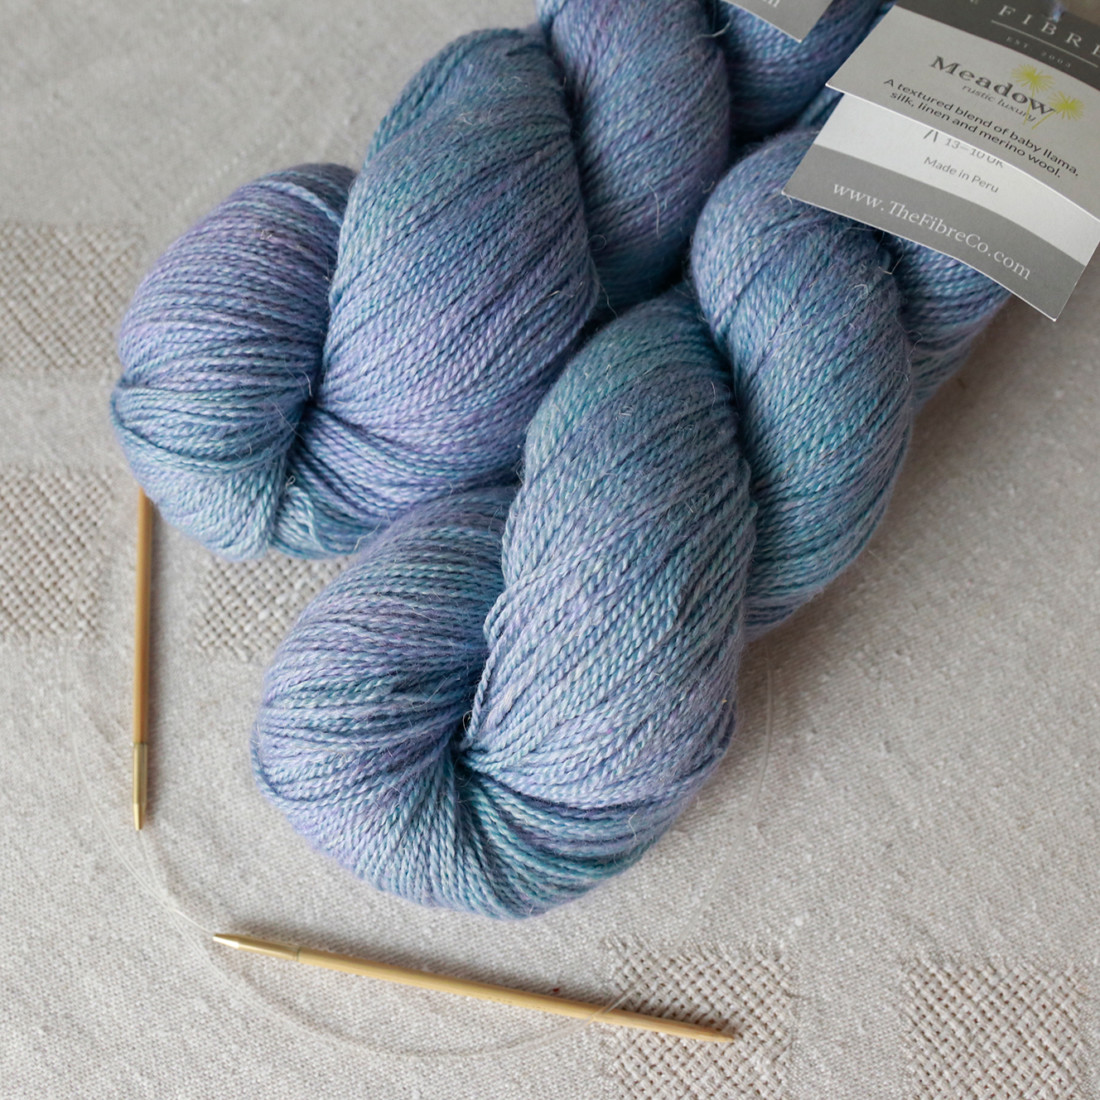 The Fibre Co Meadow in Aster on my needles